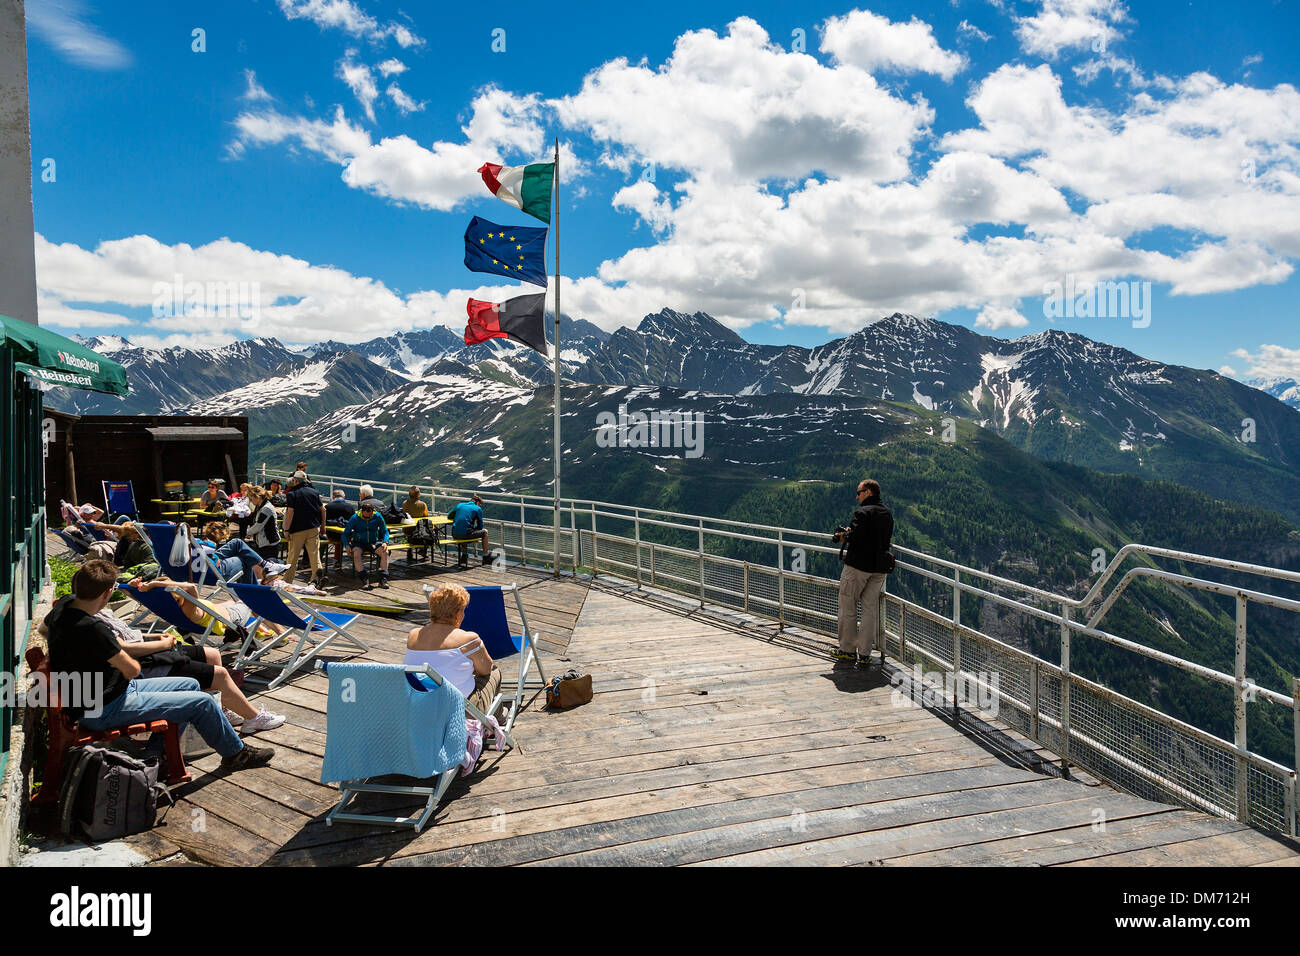 Italy, Valle d'aosta, Observation Point at Pavillon du Mont Frety - Stock Image